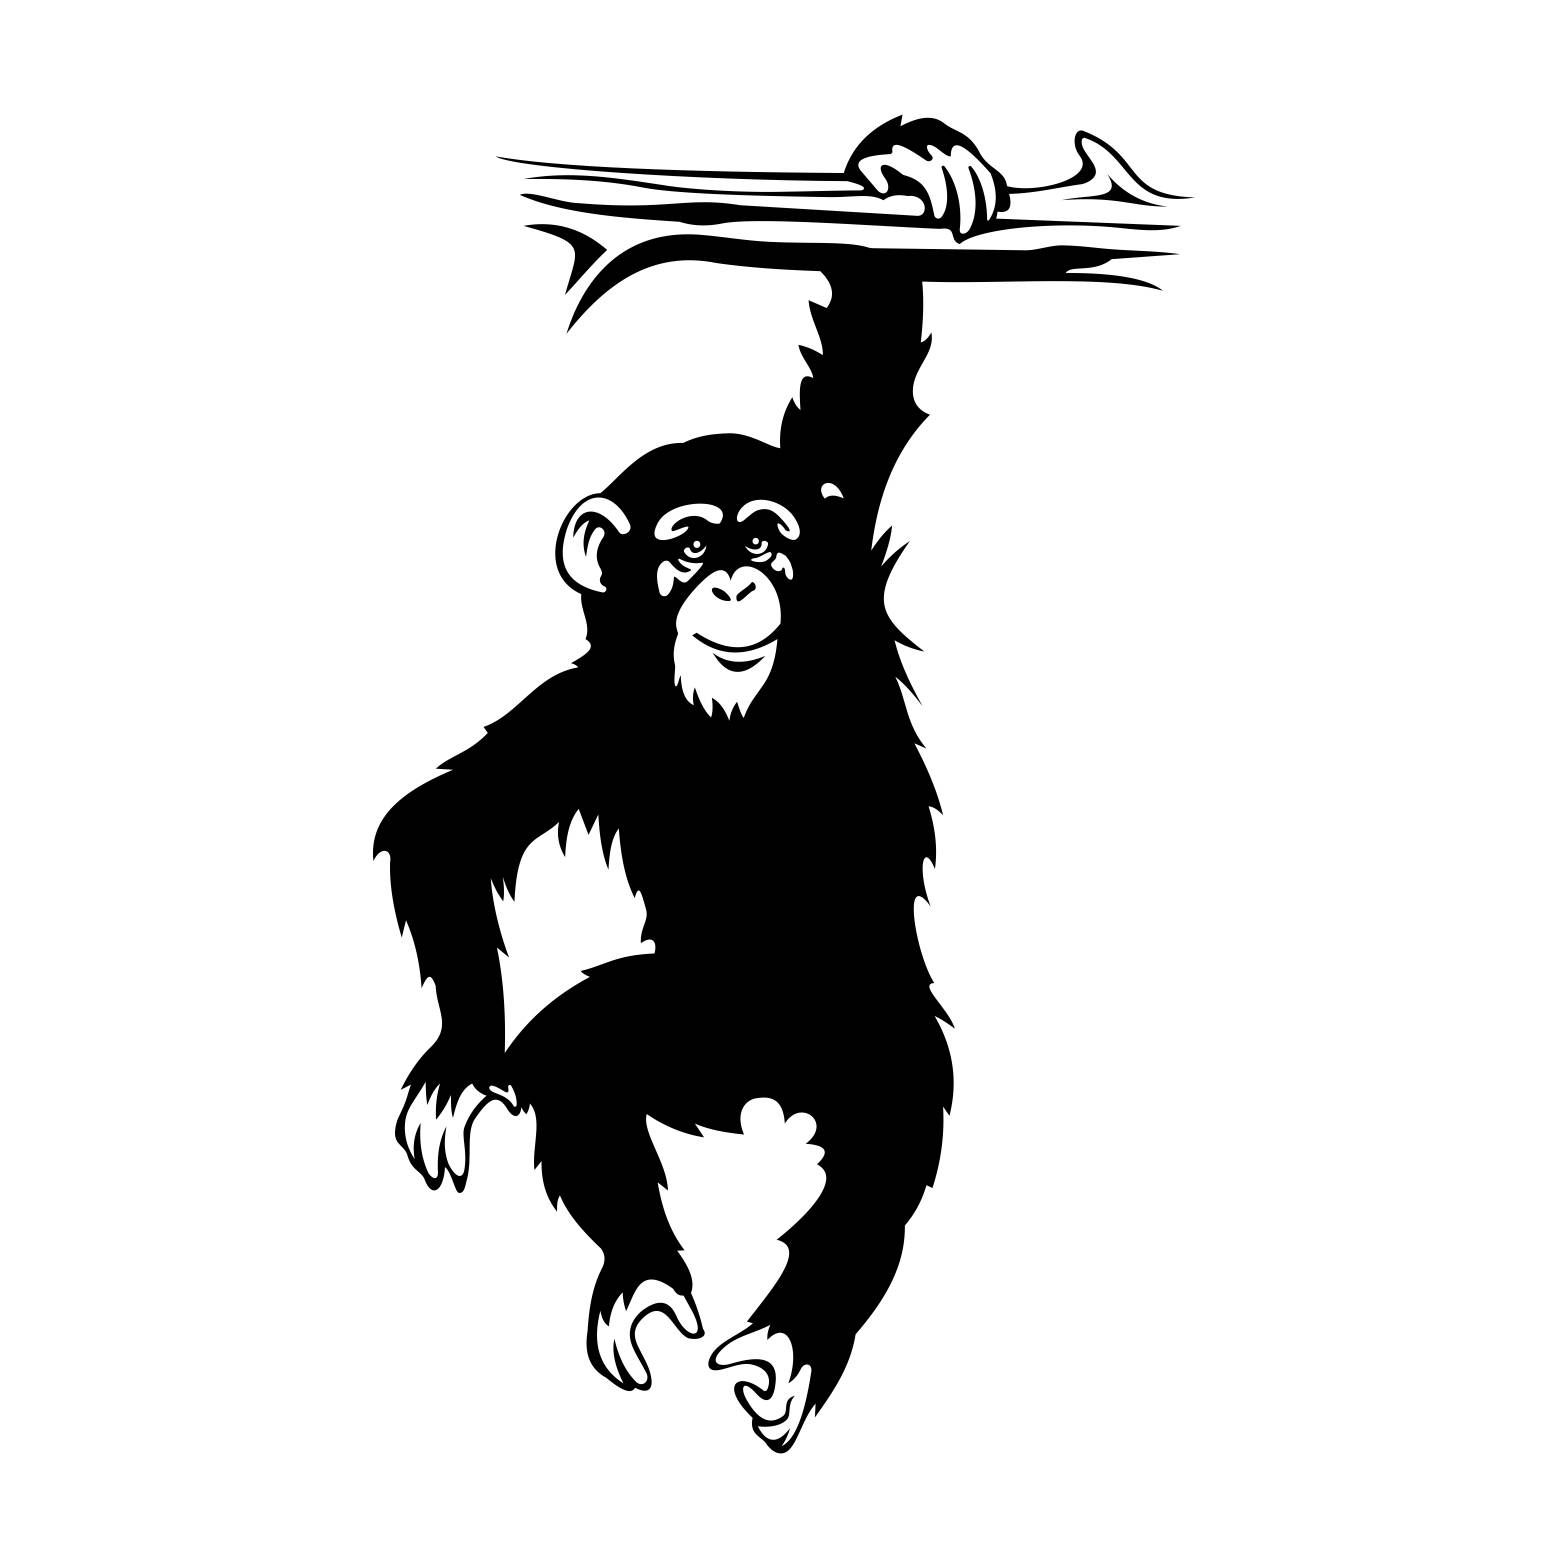 1568x1568 Monkey Chimpanzee Bough Graphics Svg Dxf Eps Png Cdr Ai Pdf Vector